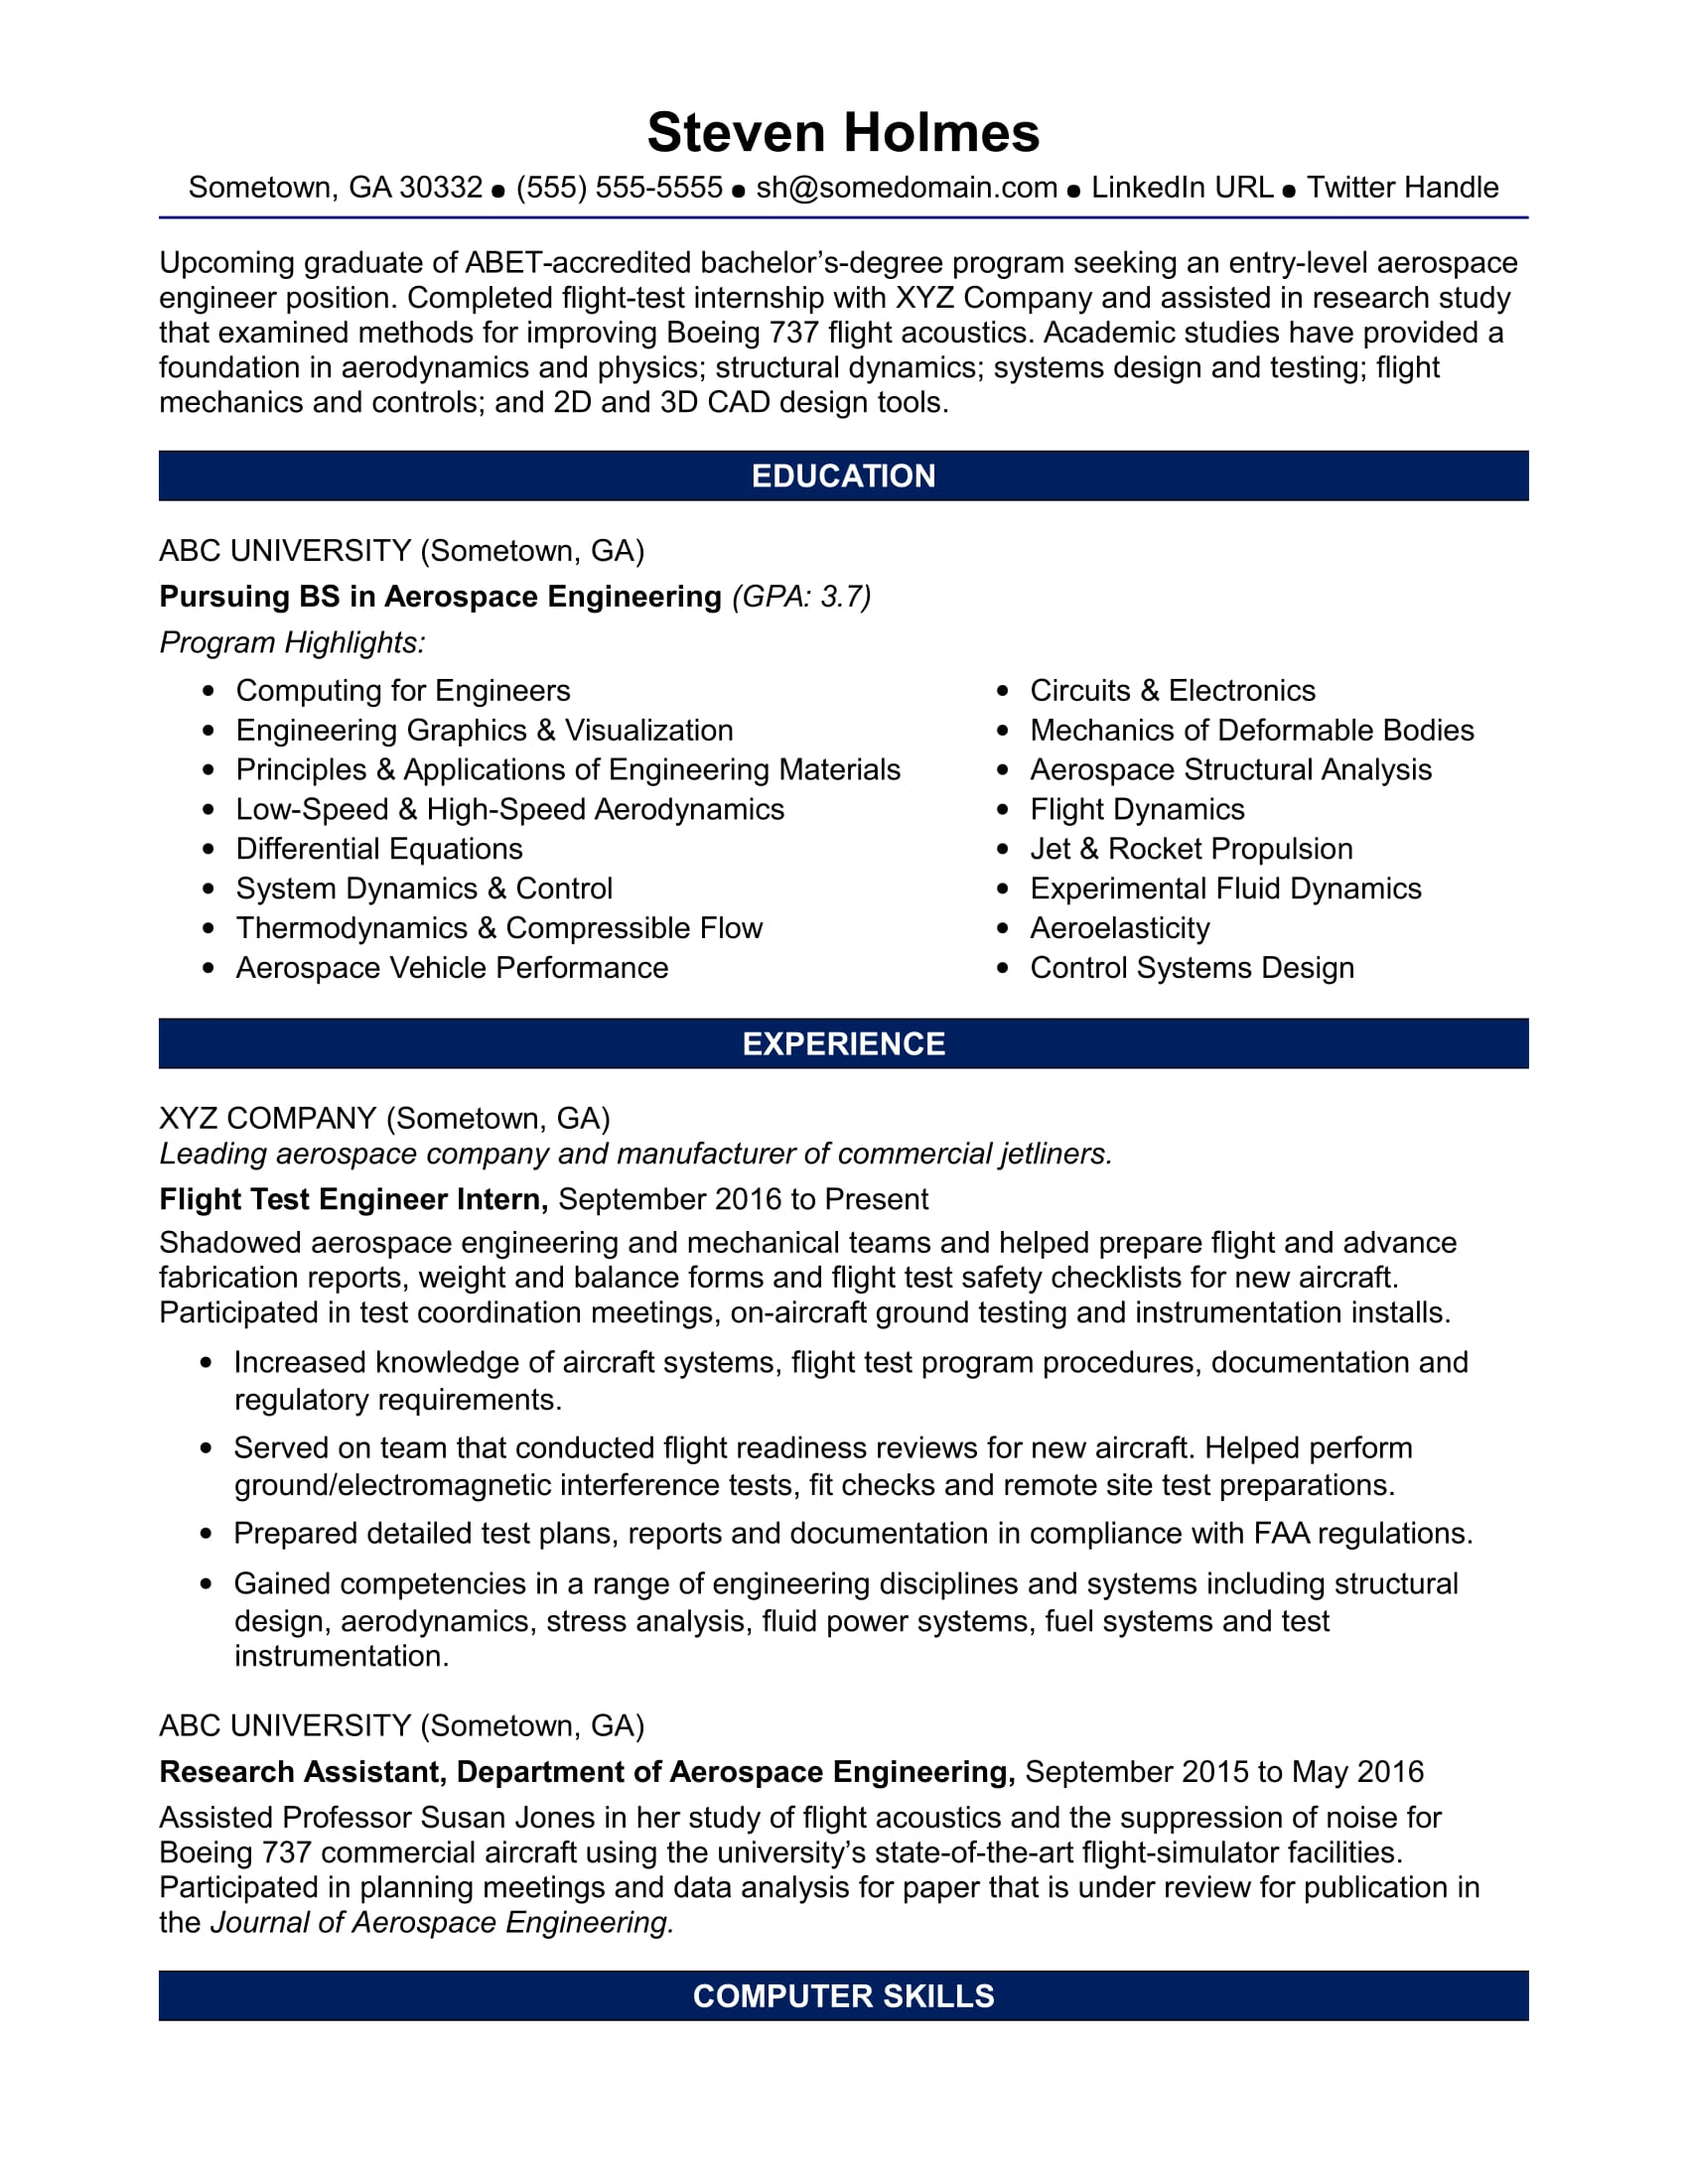 sample resume for an entry level aerospace engineer monster engineering student h1b Resume Aerospace Engineering Student Resume